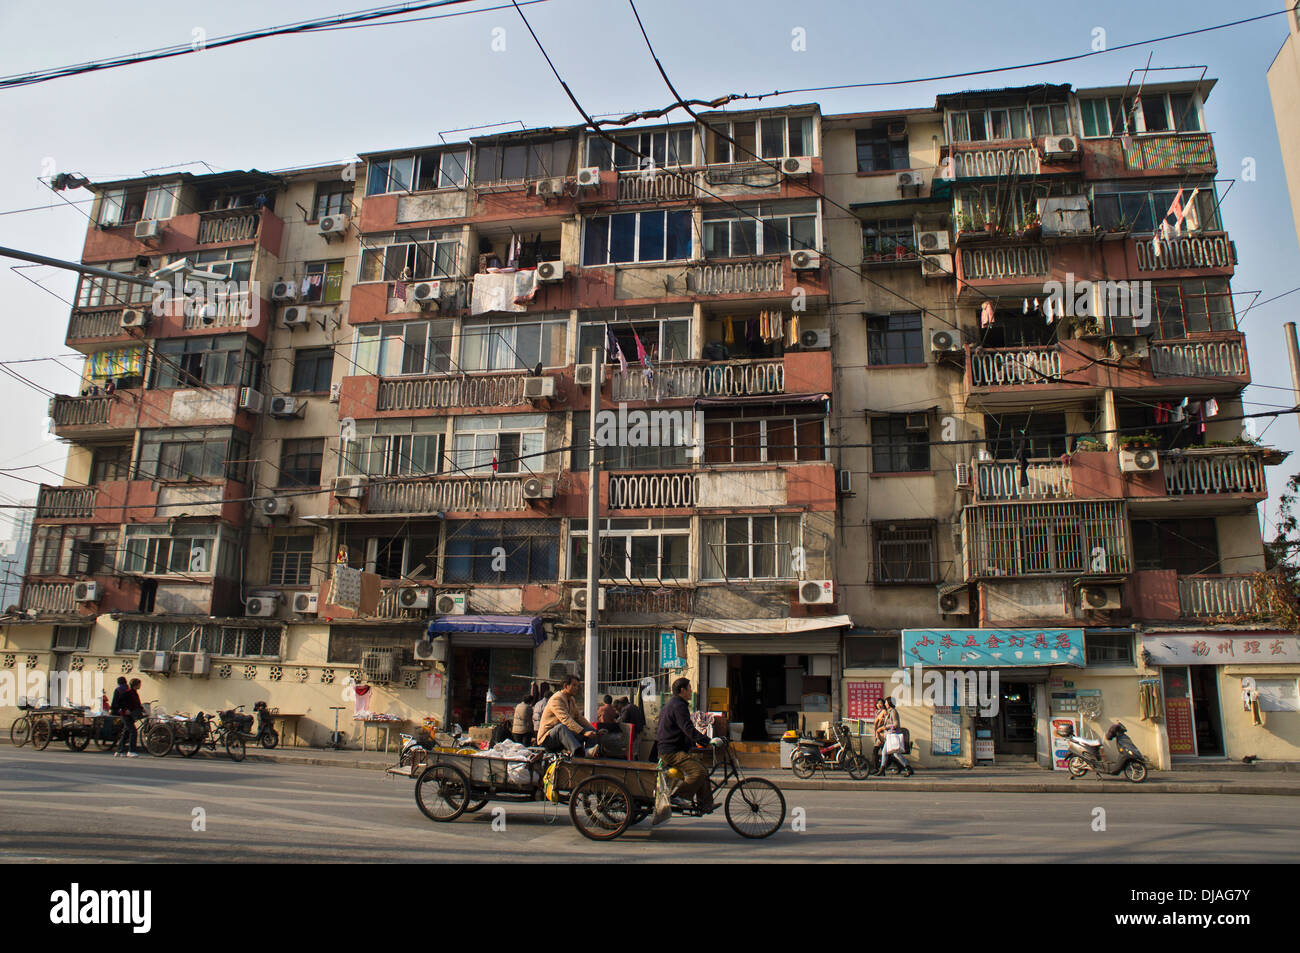 old housing in shanghai china stock photo 62927199 alamy. Black Bedroom Furniture Sets. Home Design Ideas